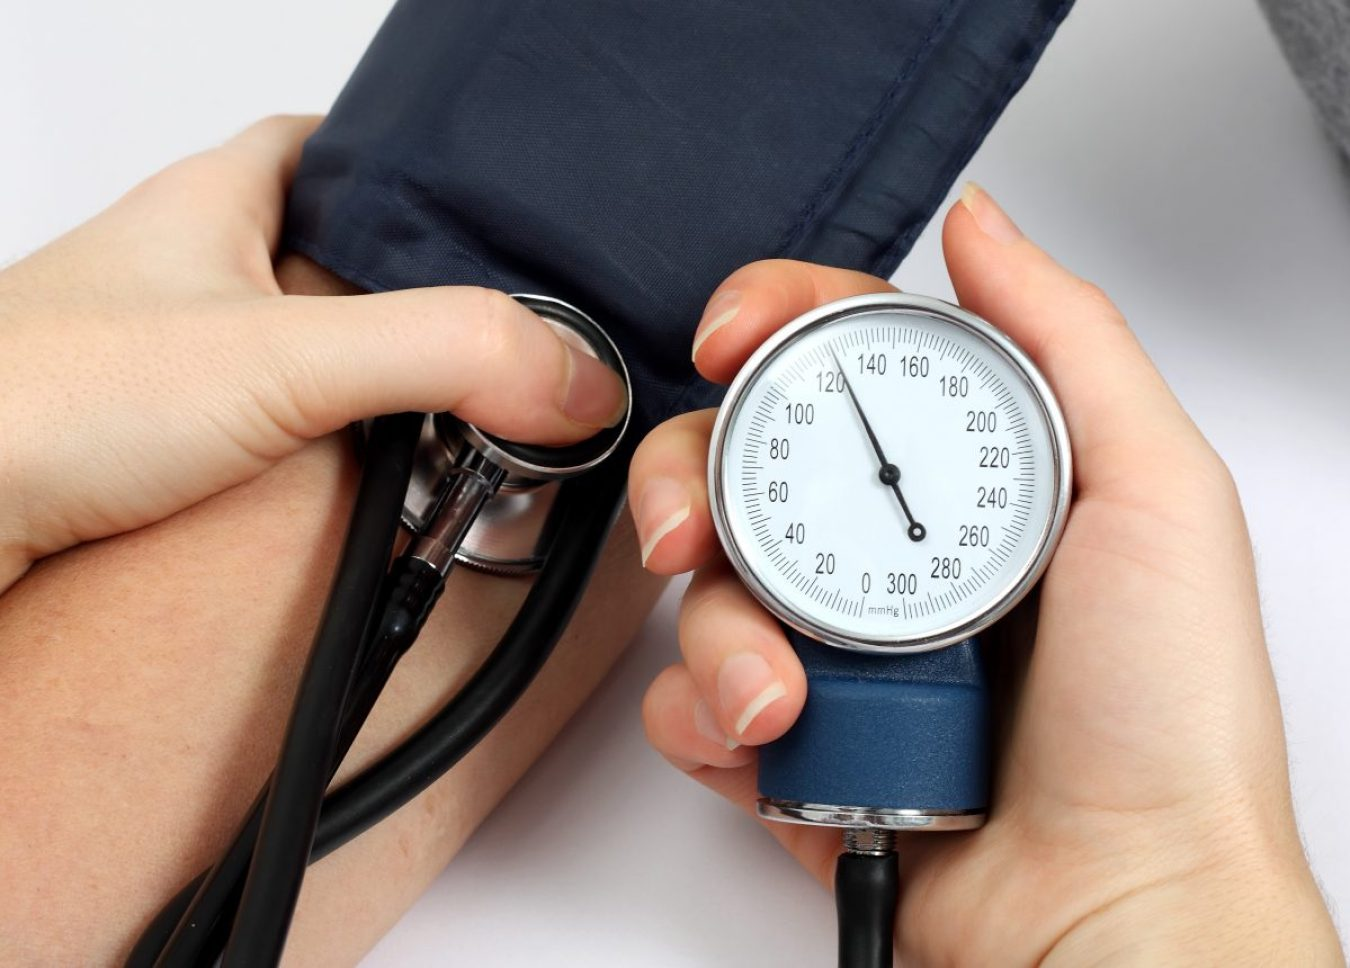 Image ID: 41664023 (L). Image credit: Levente Gyori / 123rf. Used for World Hypertension Day 2021